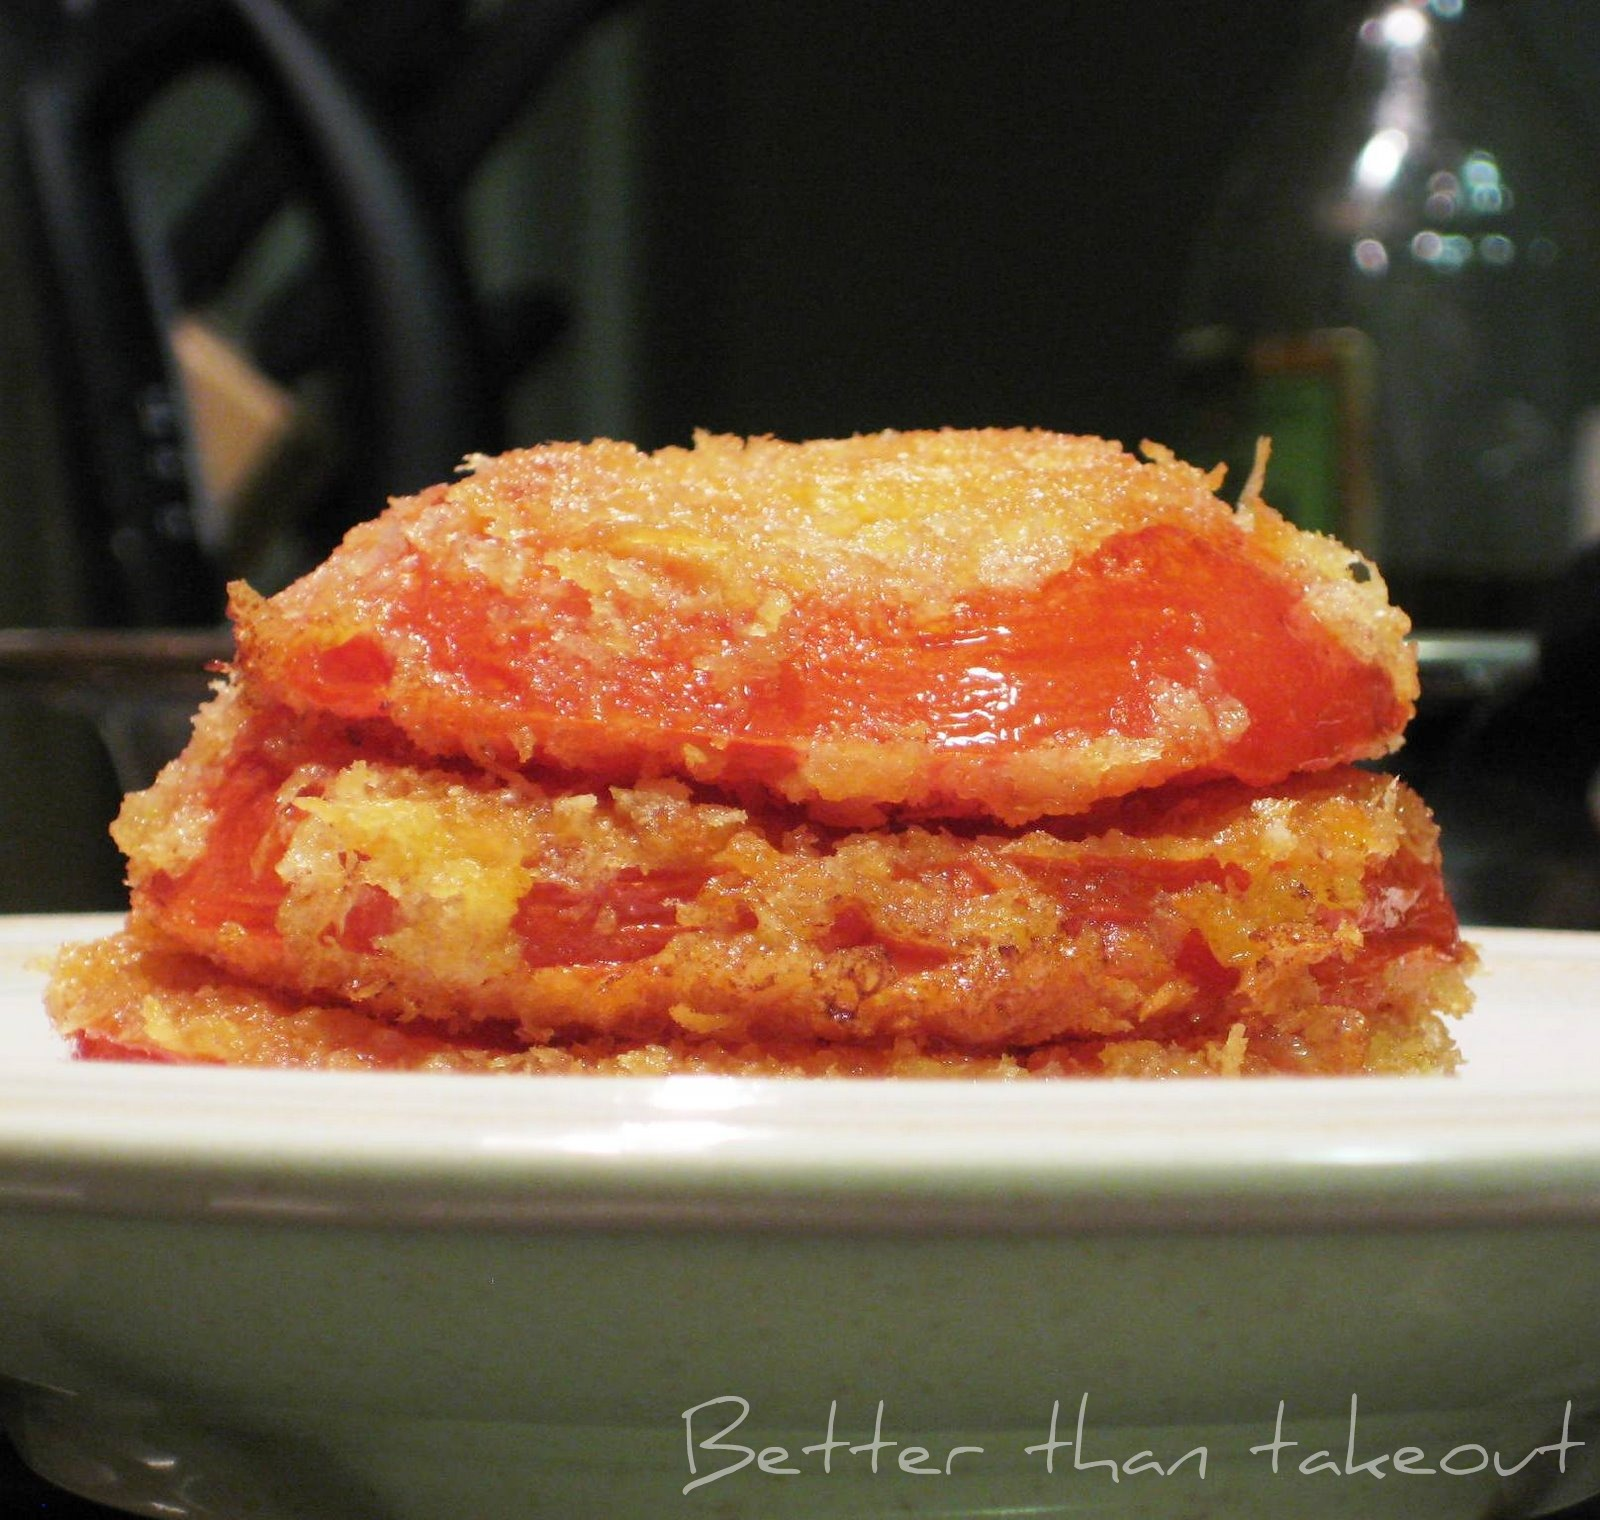 Better than takeout: Fried Red Tomatoes